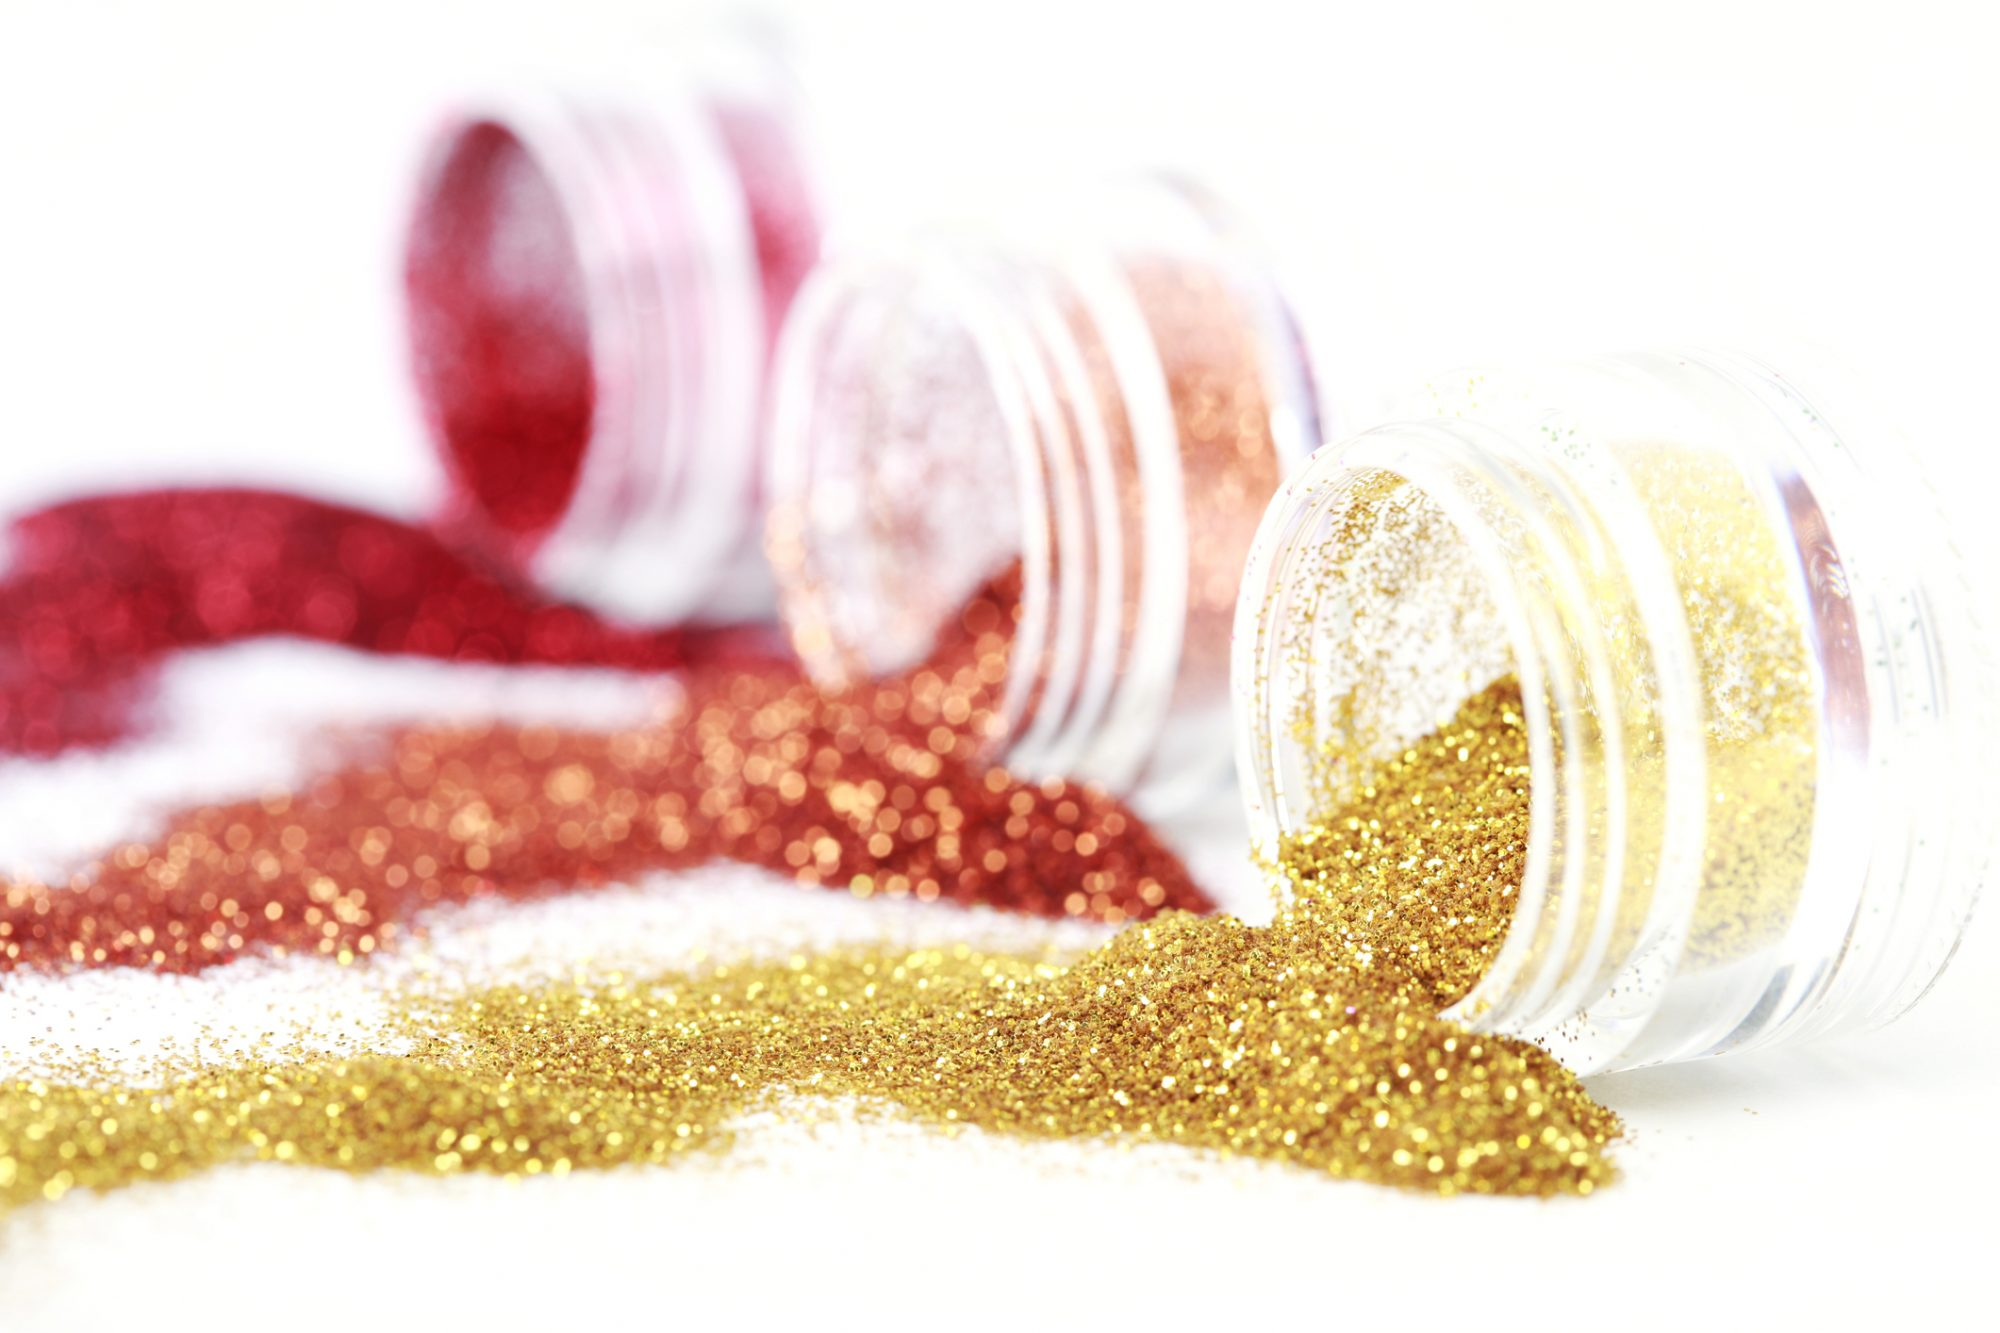 Colorful spilled glitter